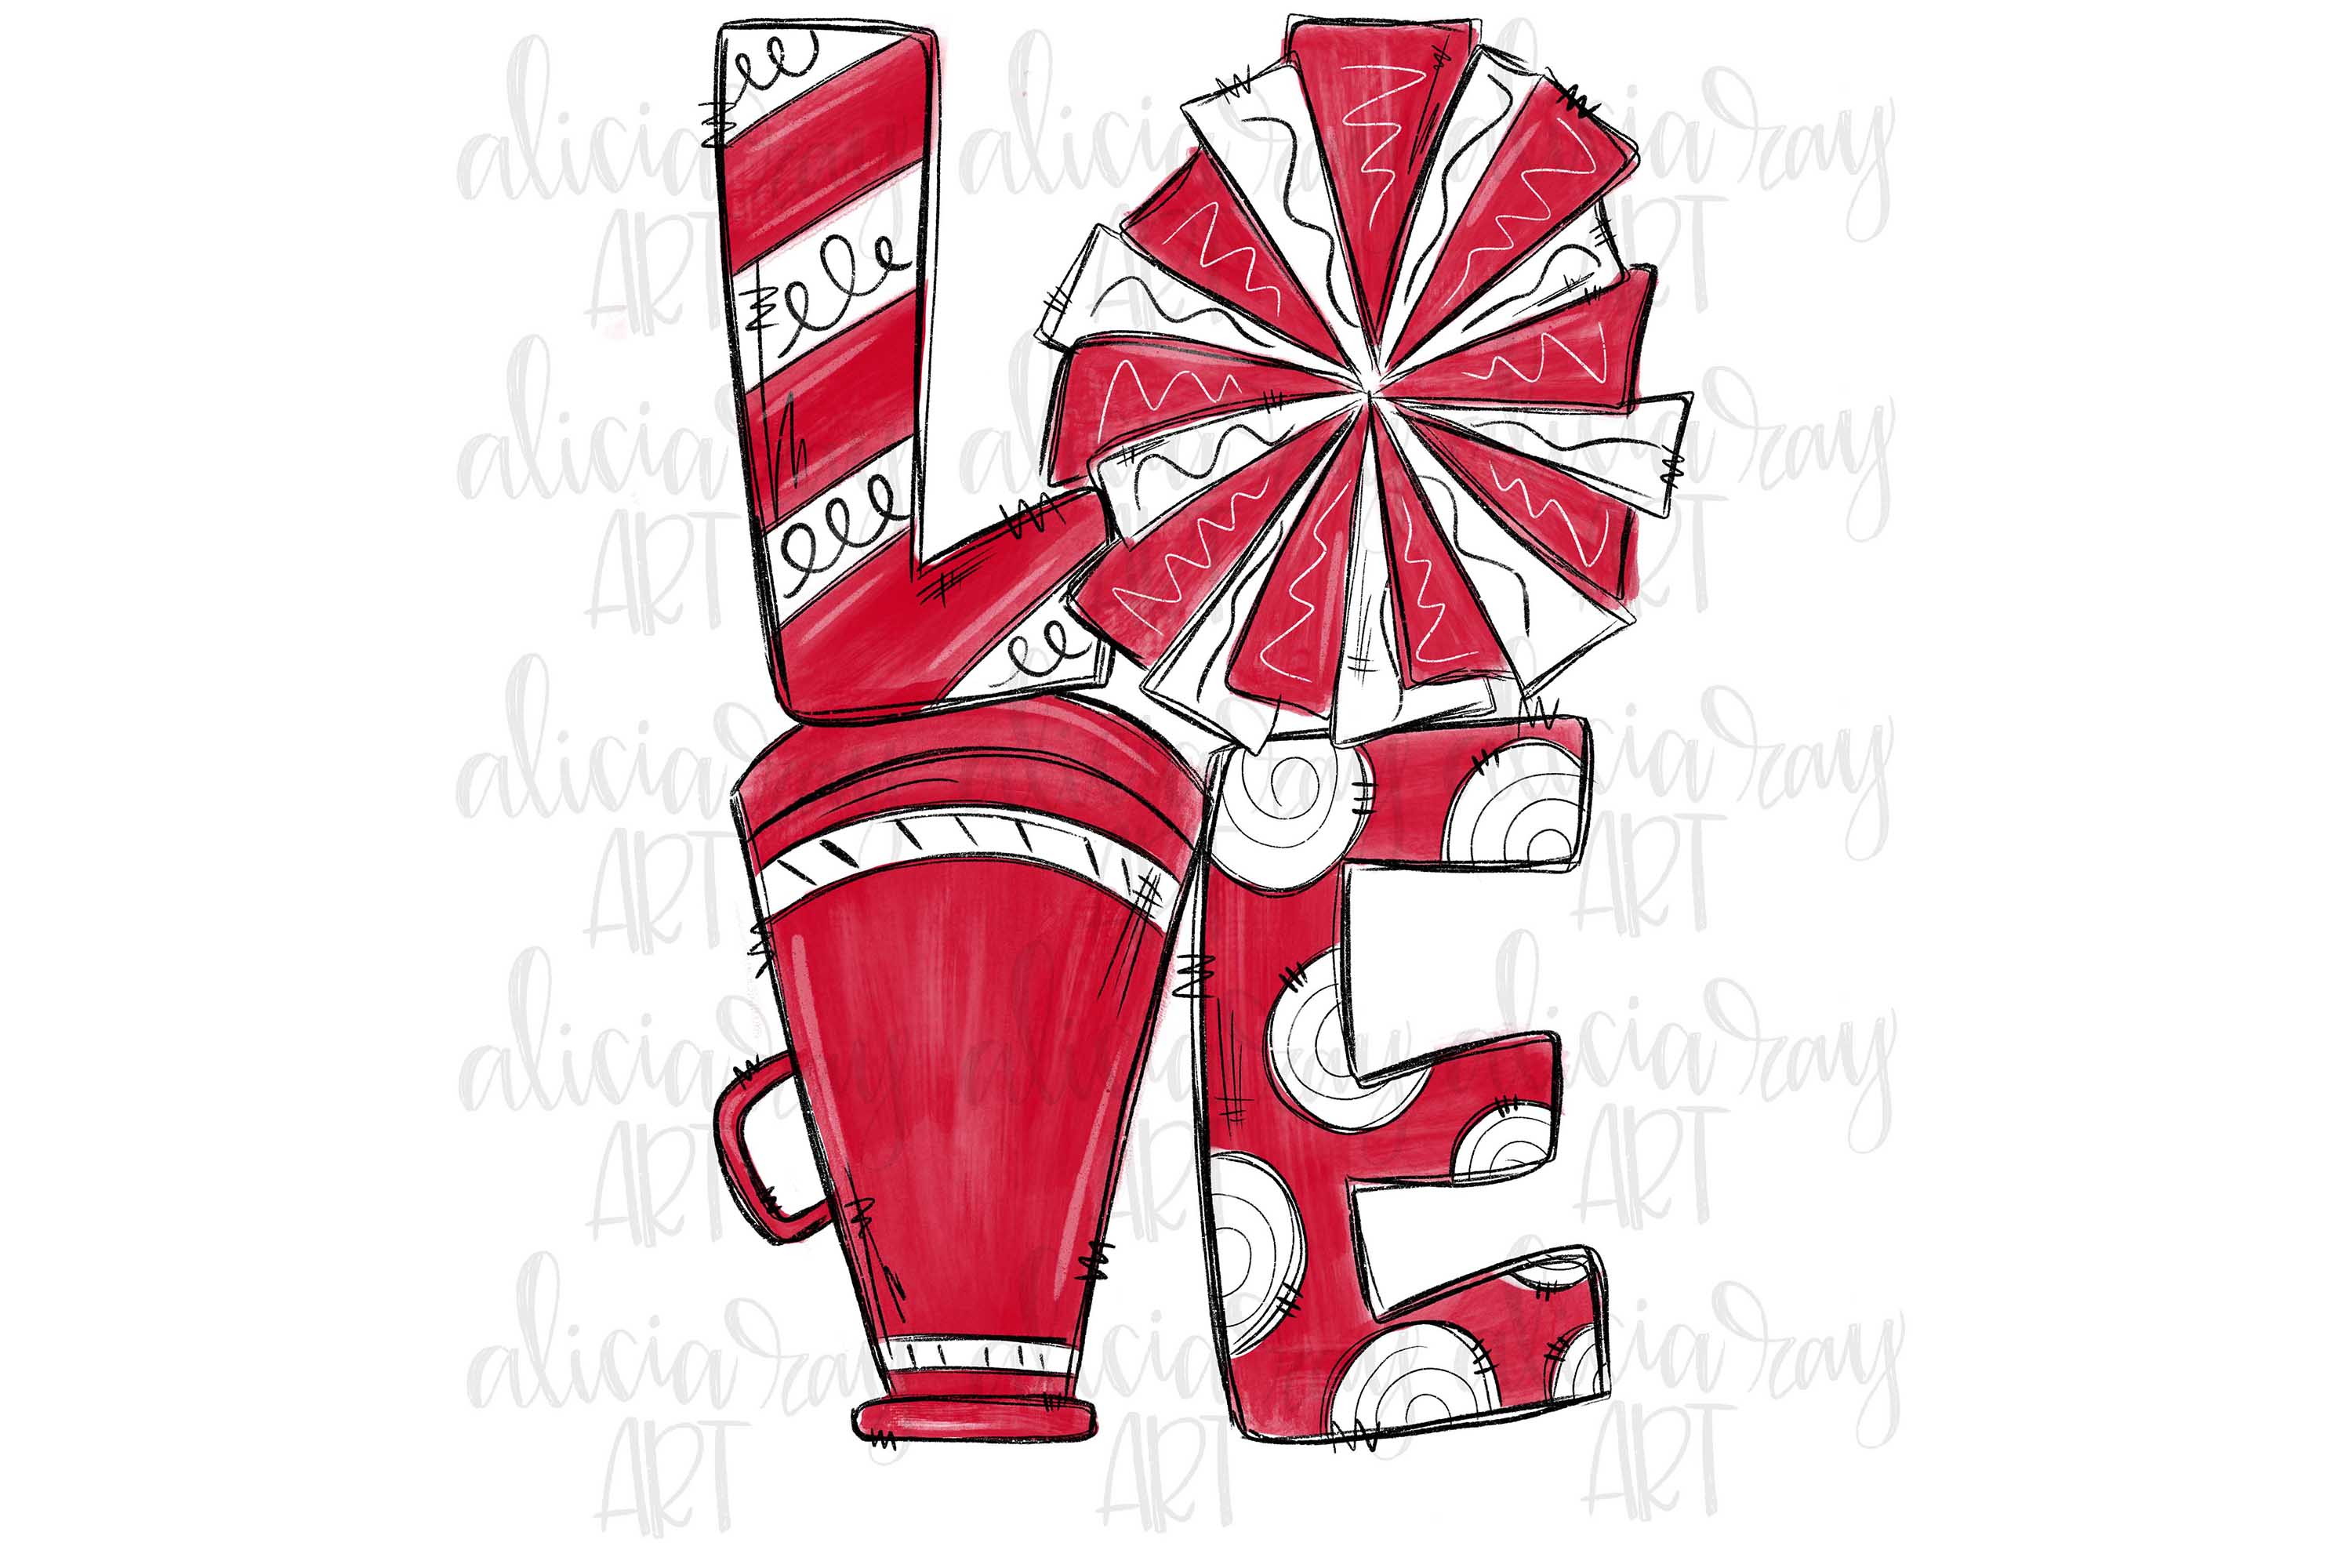 Cheer Love Crimson and White example image 1